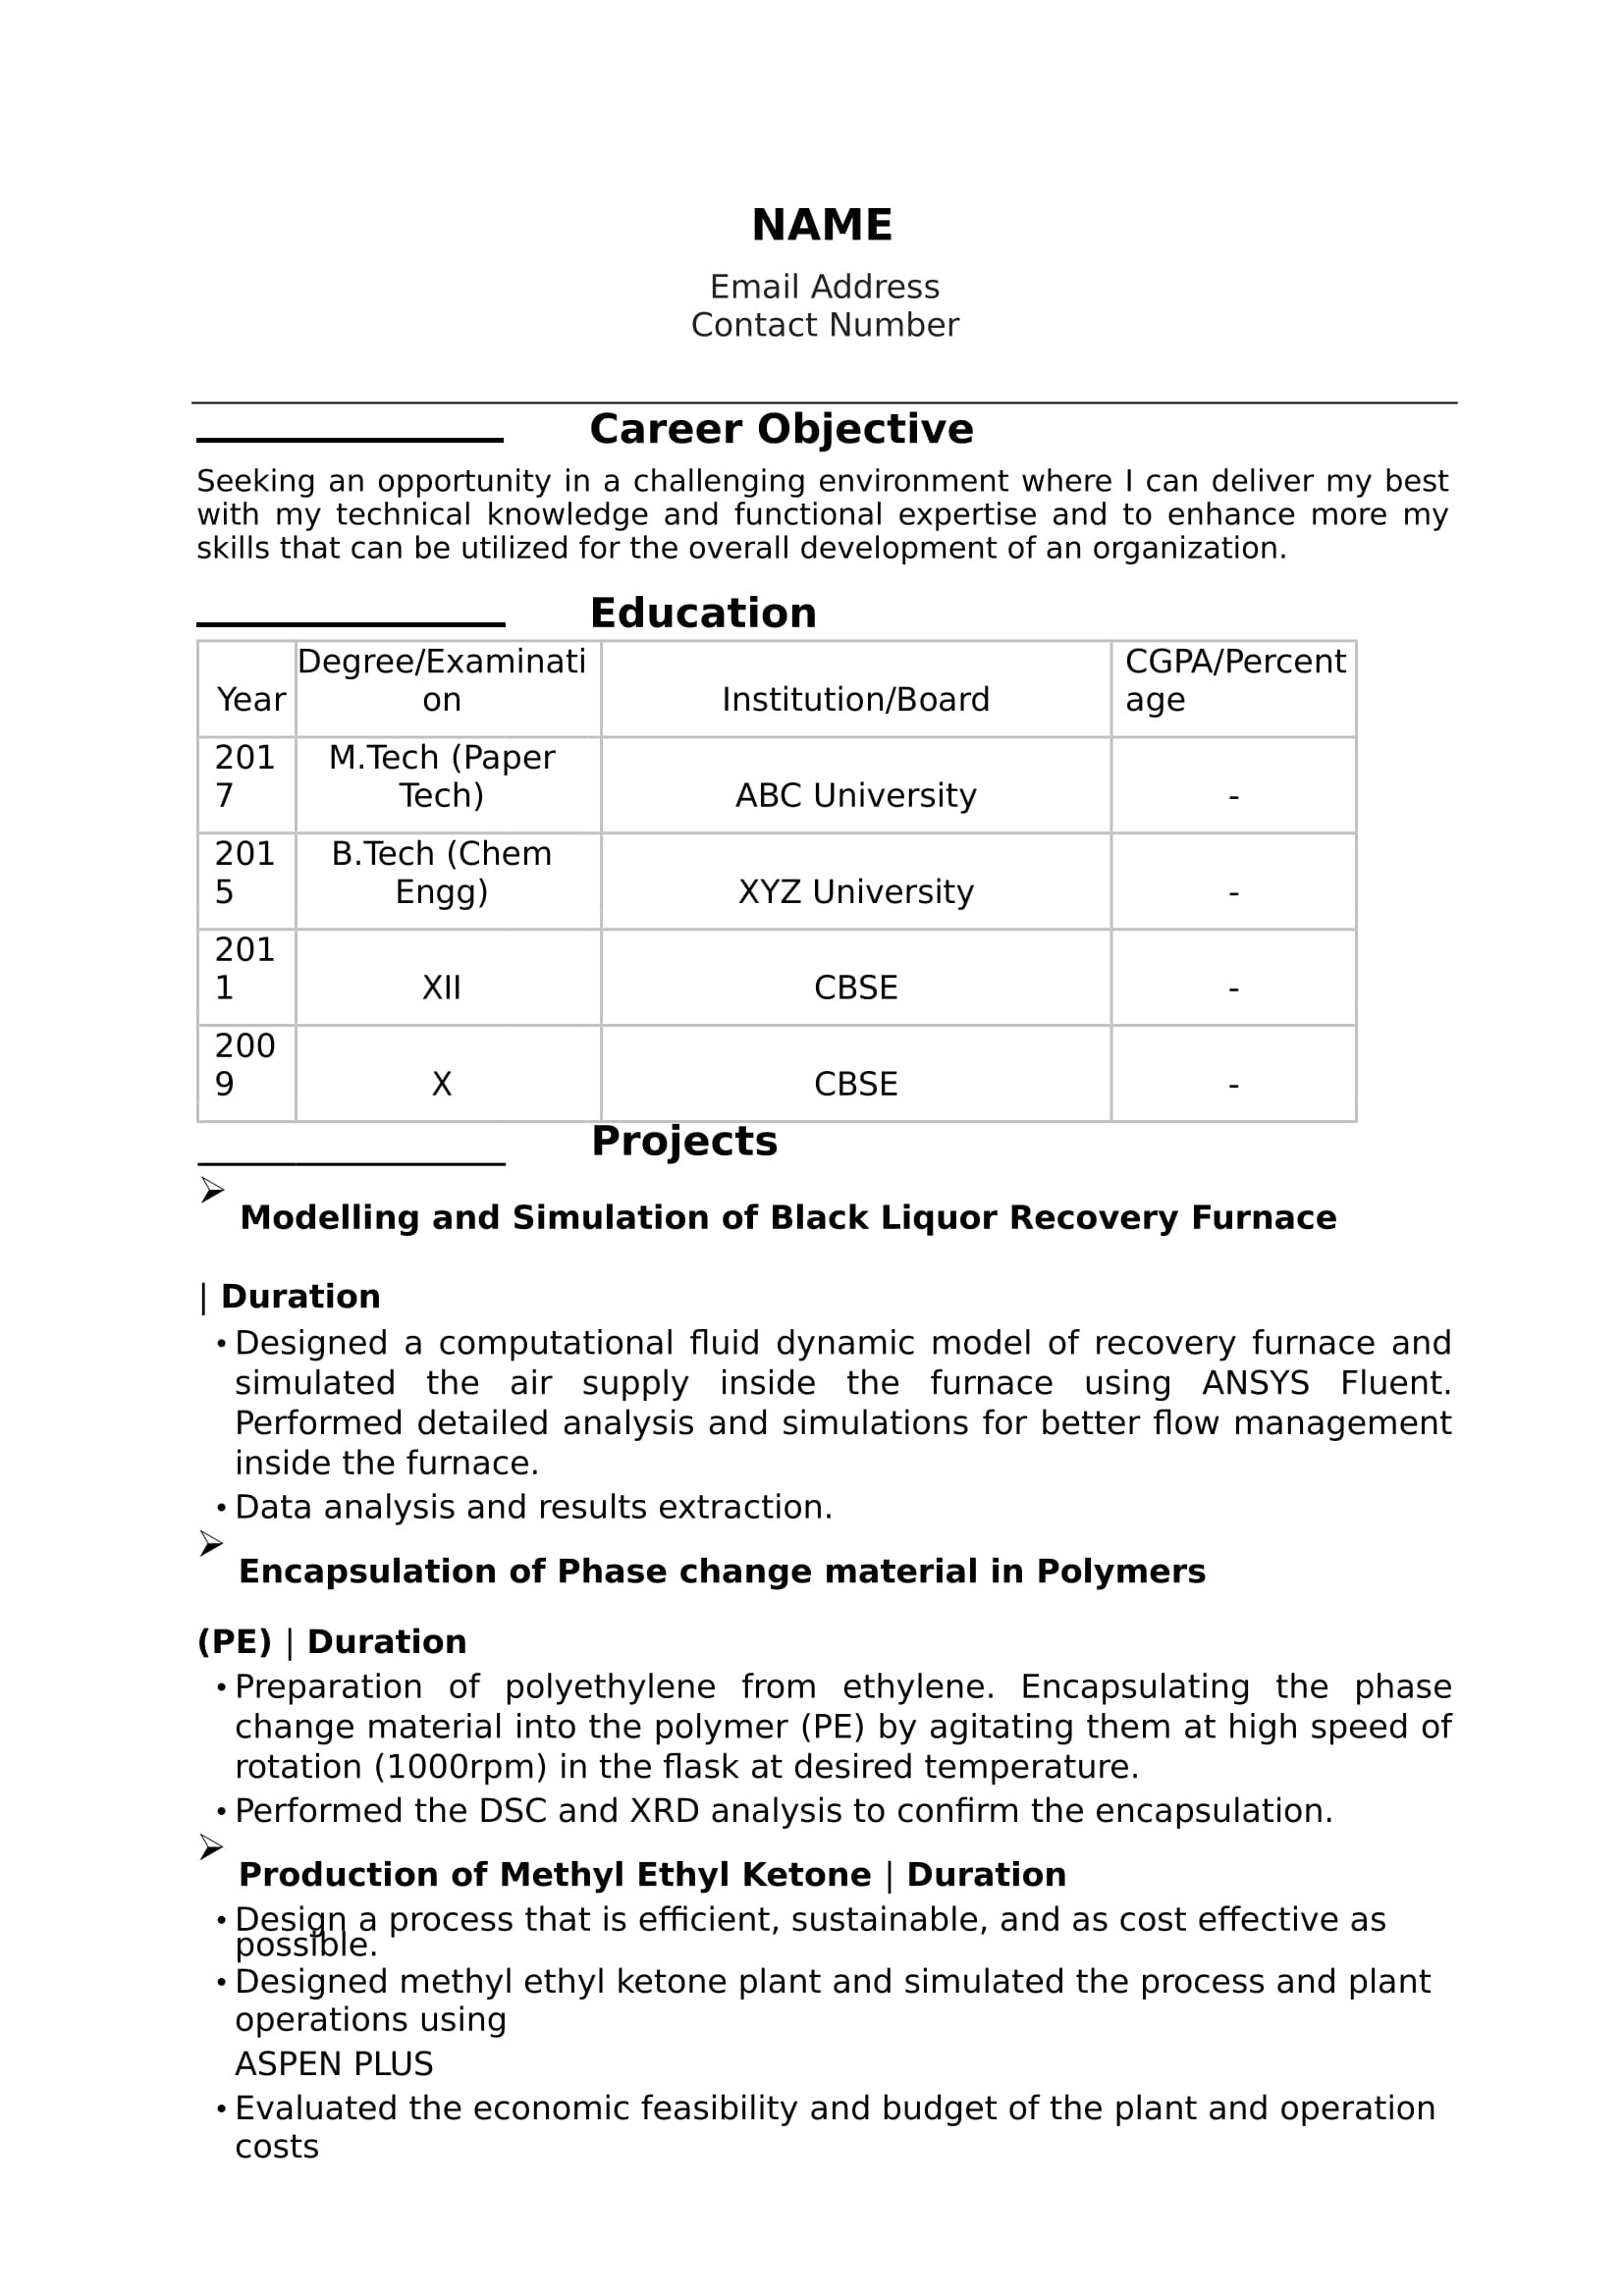 Resume format by Word 32 Resume Templates for Freshers Download Free Word format